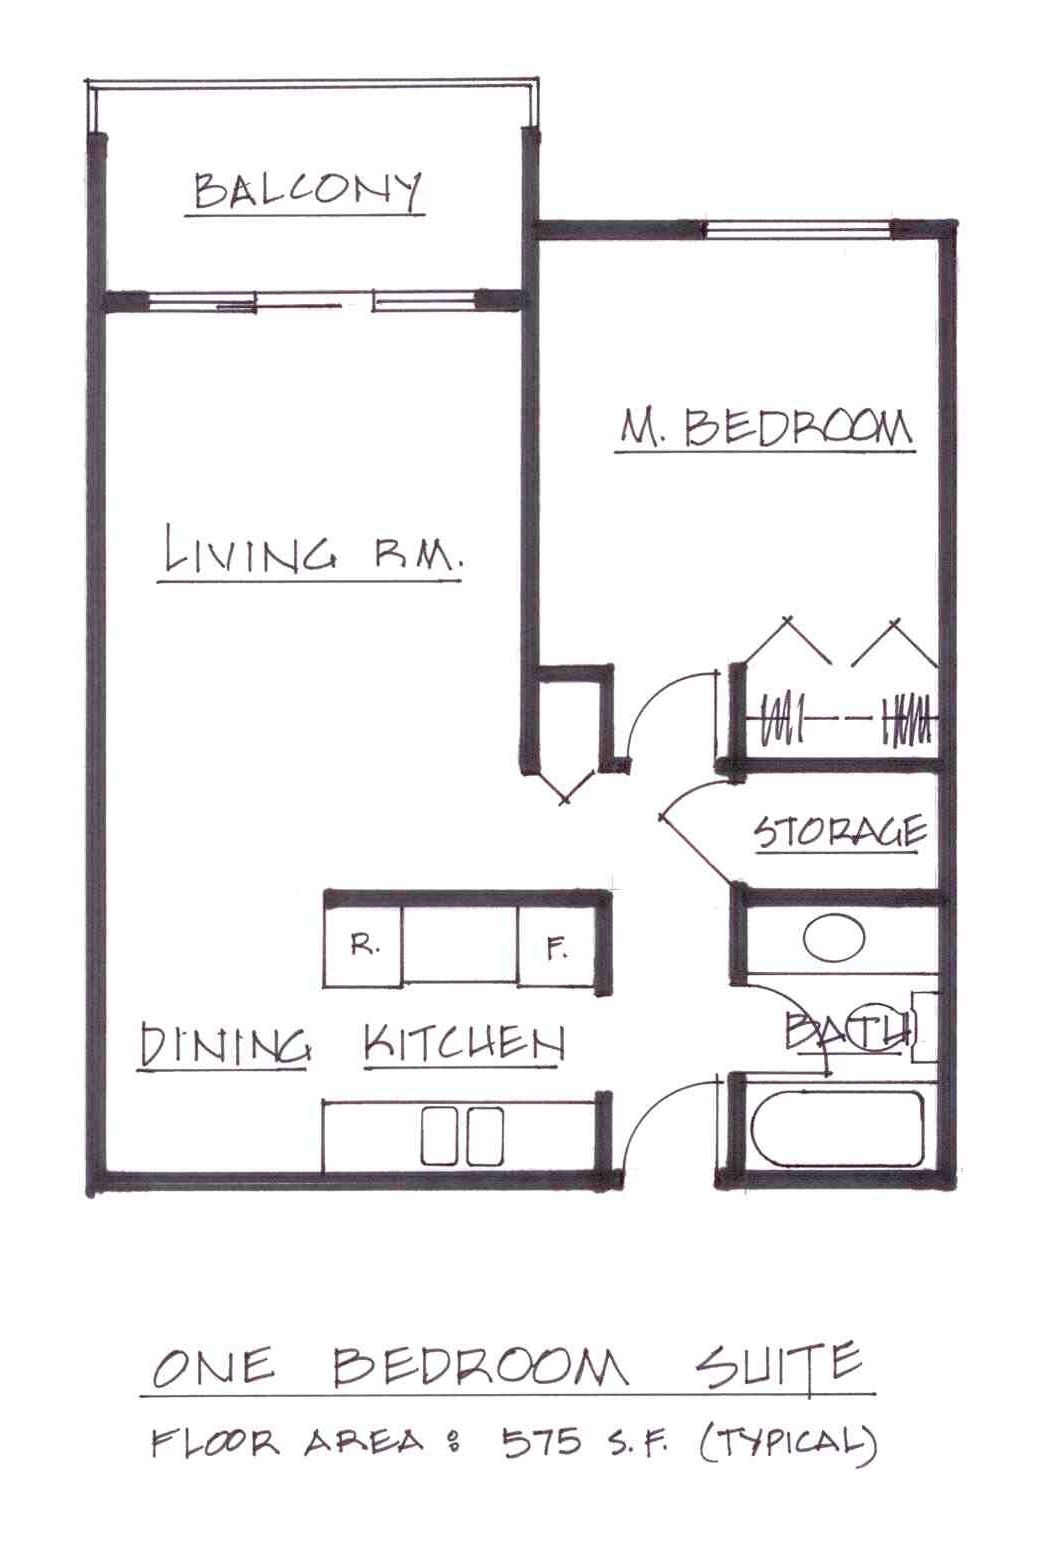 King S Court Floor Plans Penticton Apartments For Rent In Penticton Bc Floor Plans How To Plan Apartments For Rent